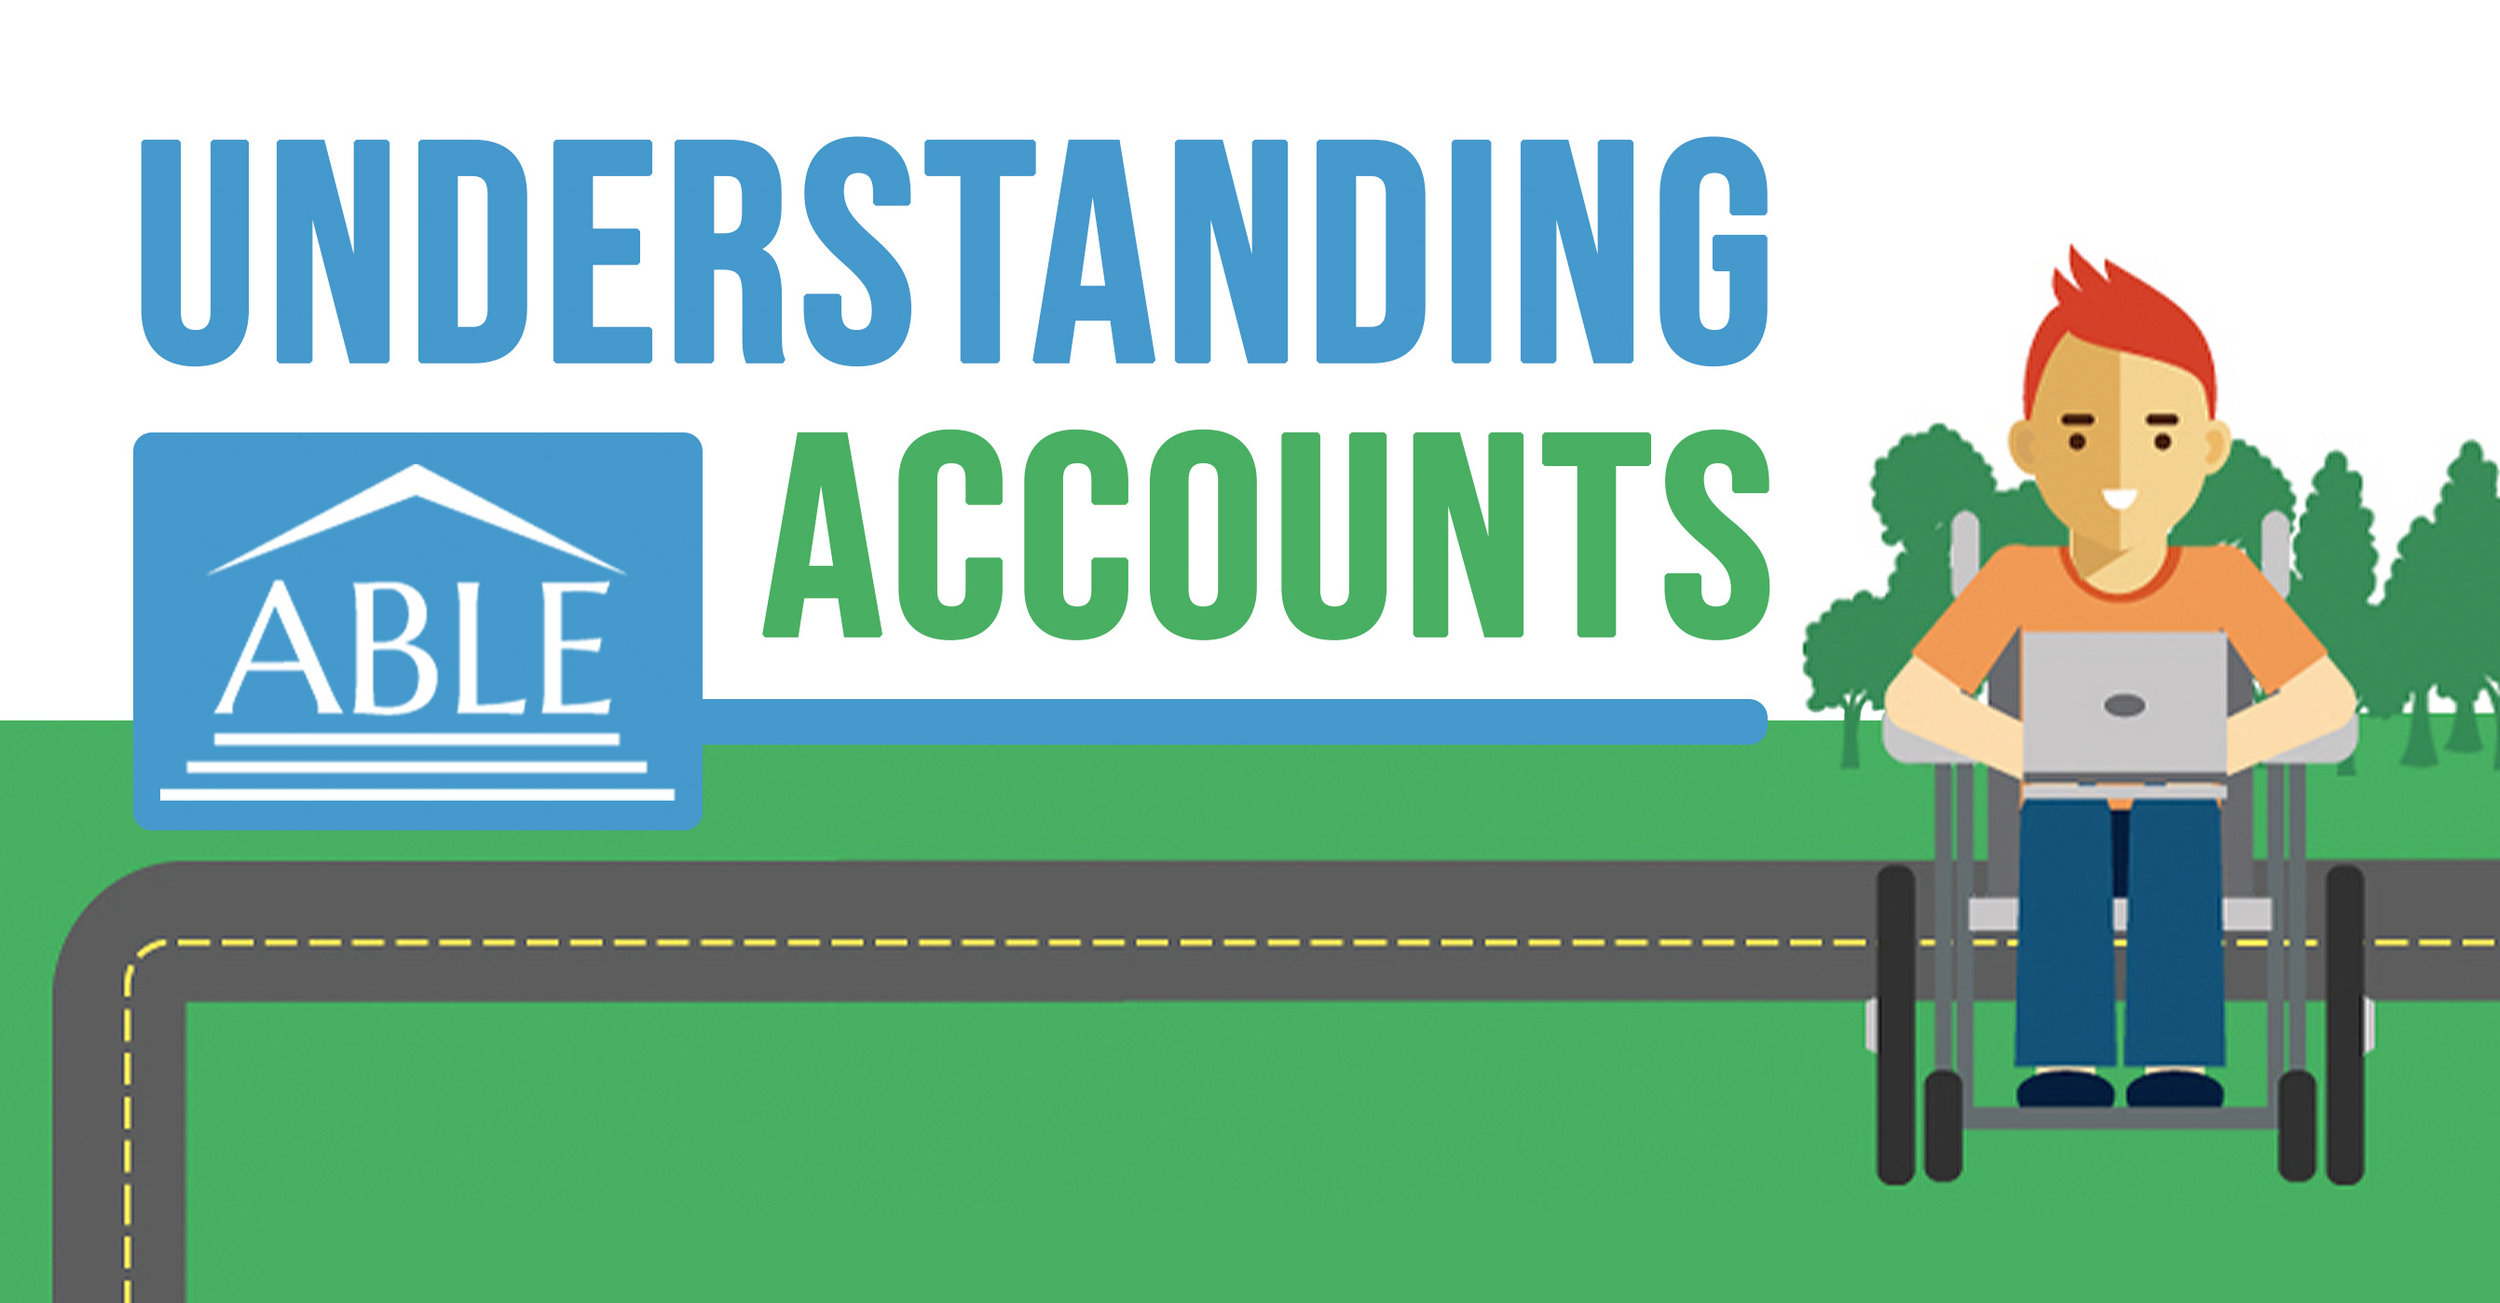 Understanding ABLE Accounts.jpg